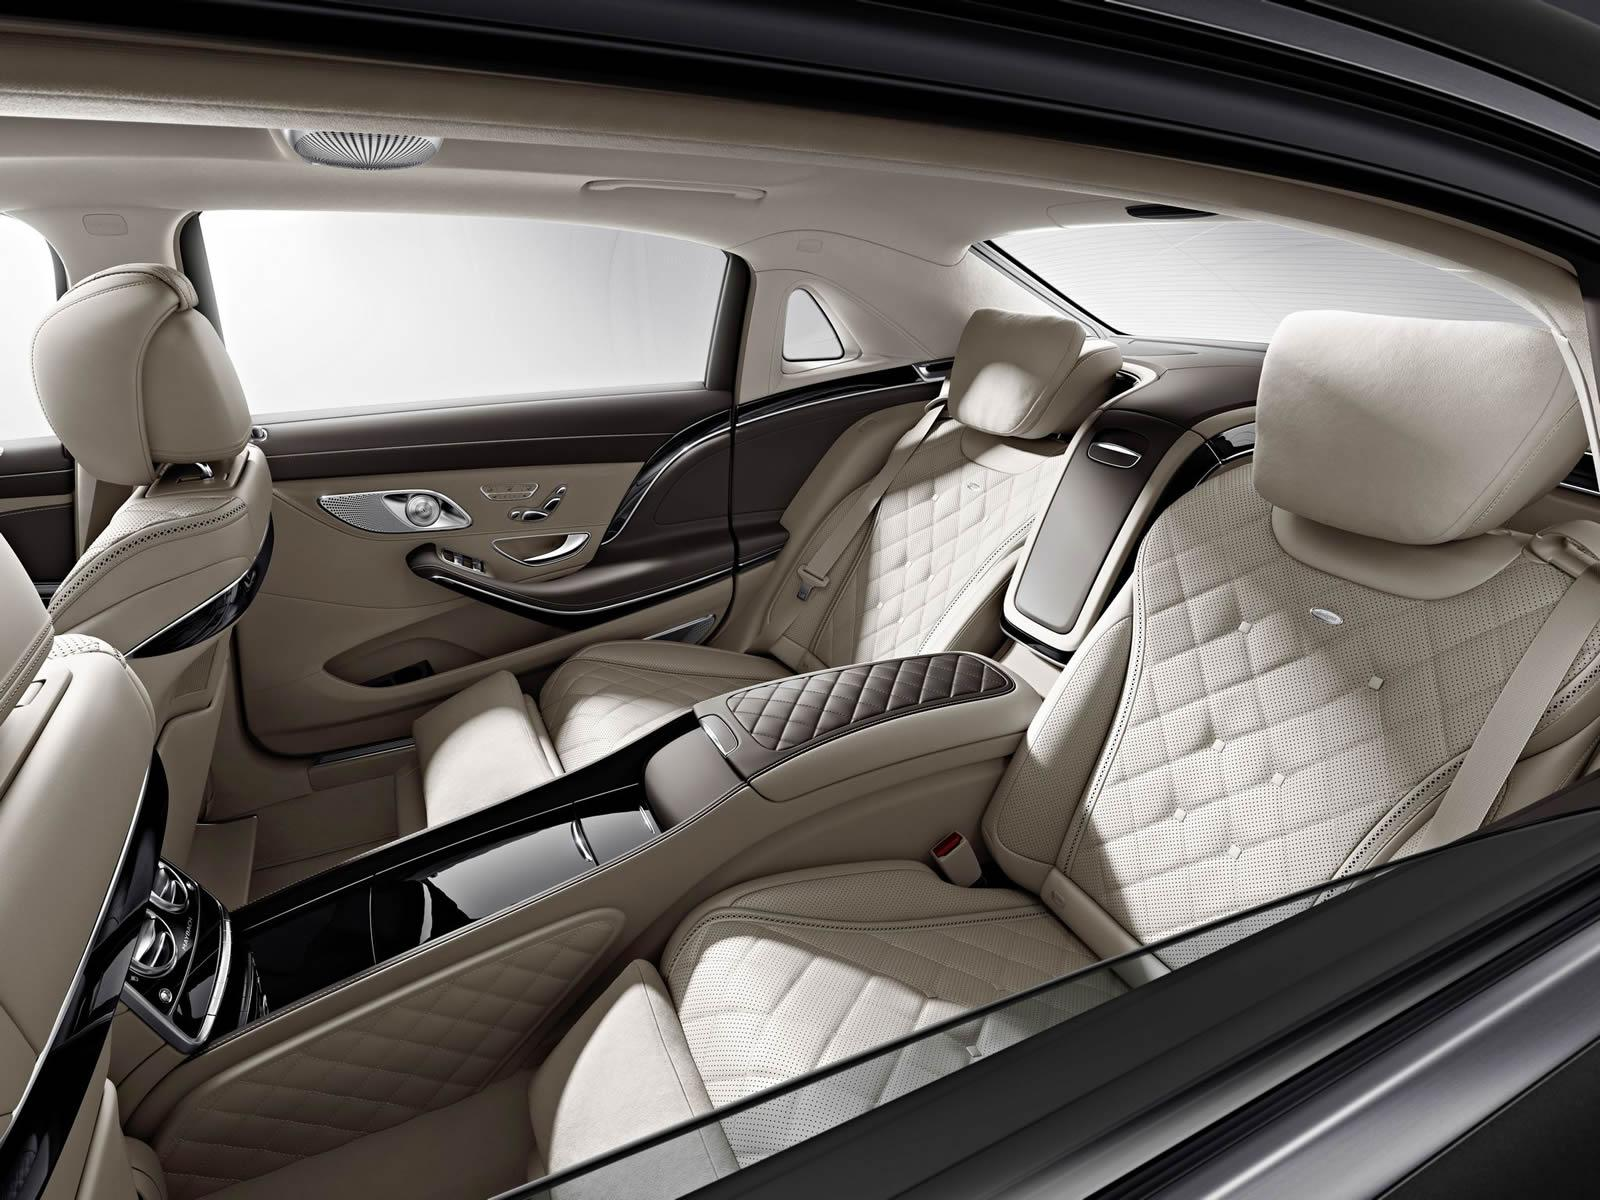 mercedes-maybach s600 to bow in los angeles, here is the interior